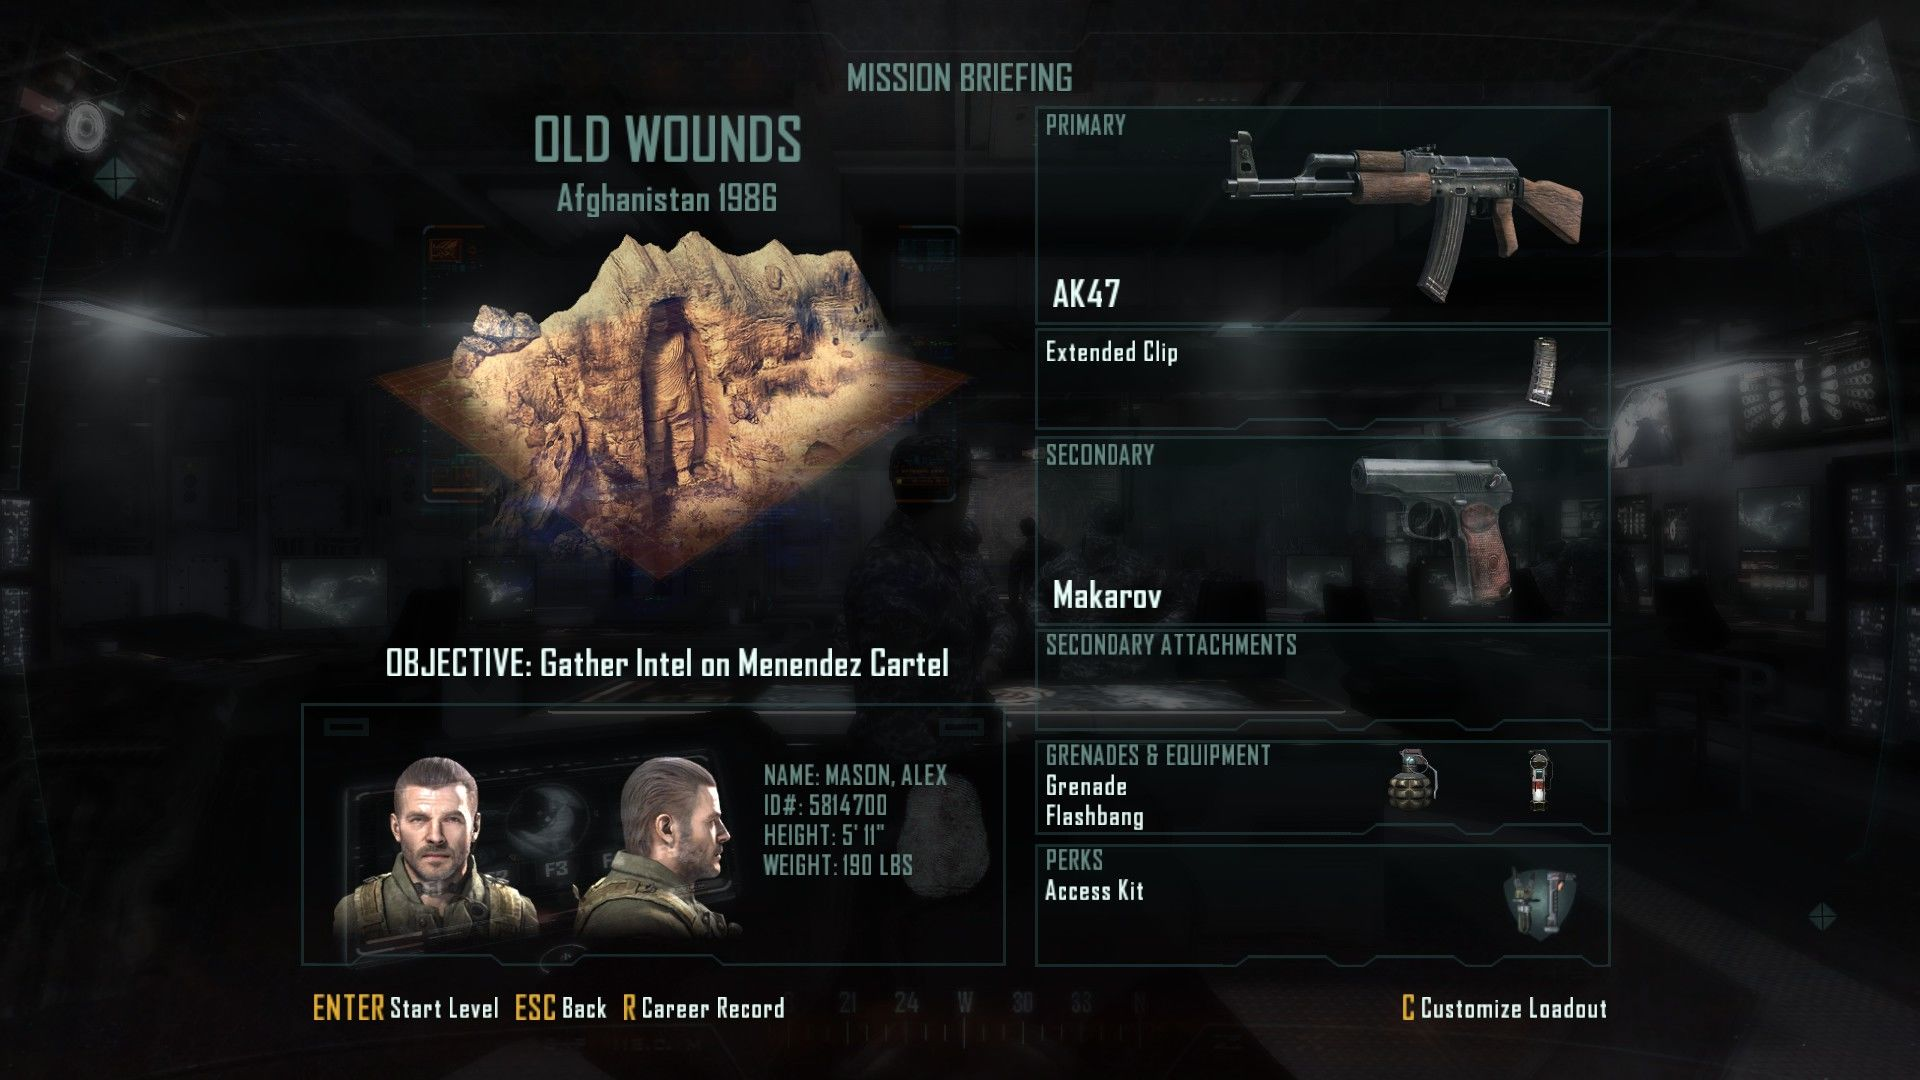 Call of Duty: Black Ops II Windows The campaign now has loadout selection similar to multiplayer.